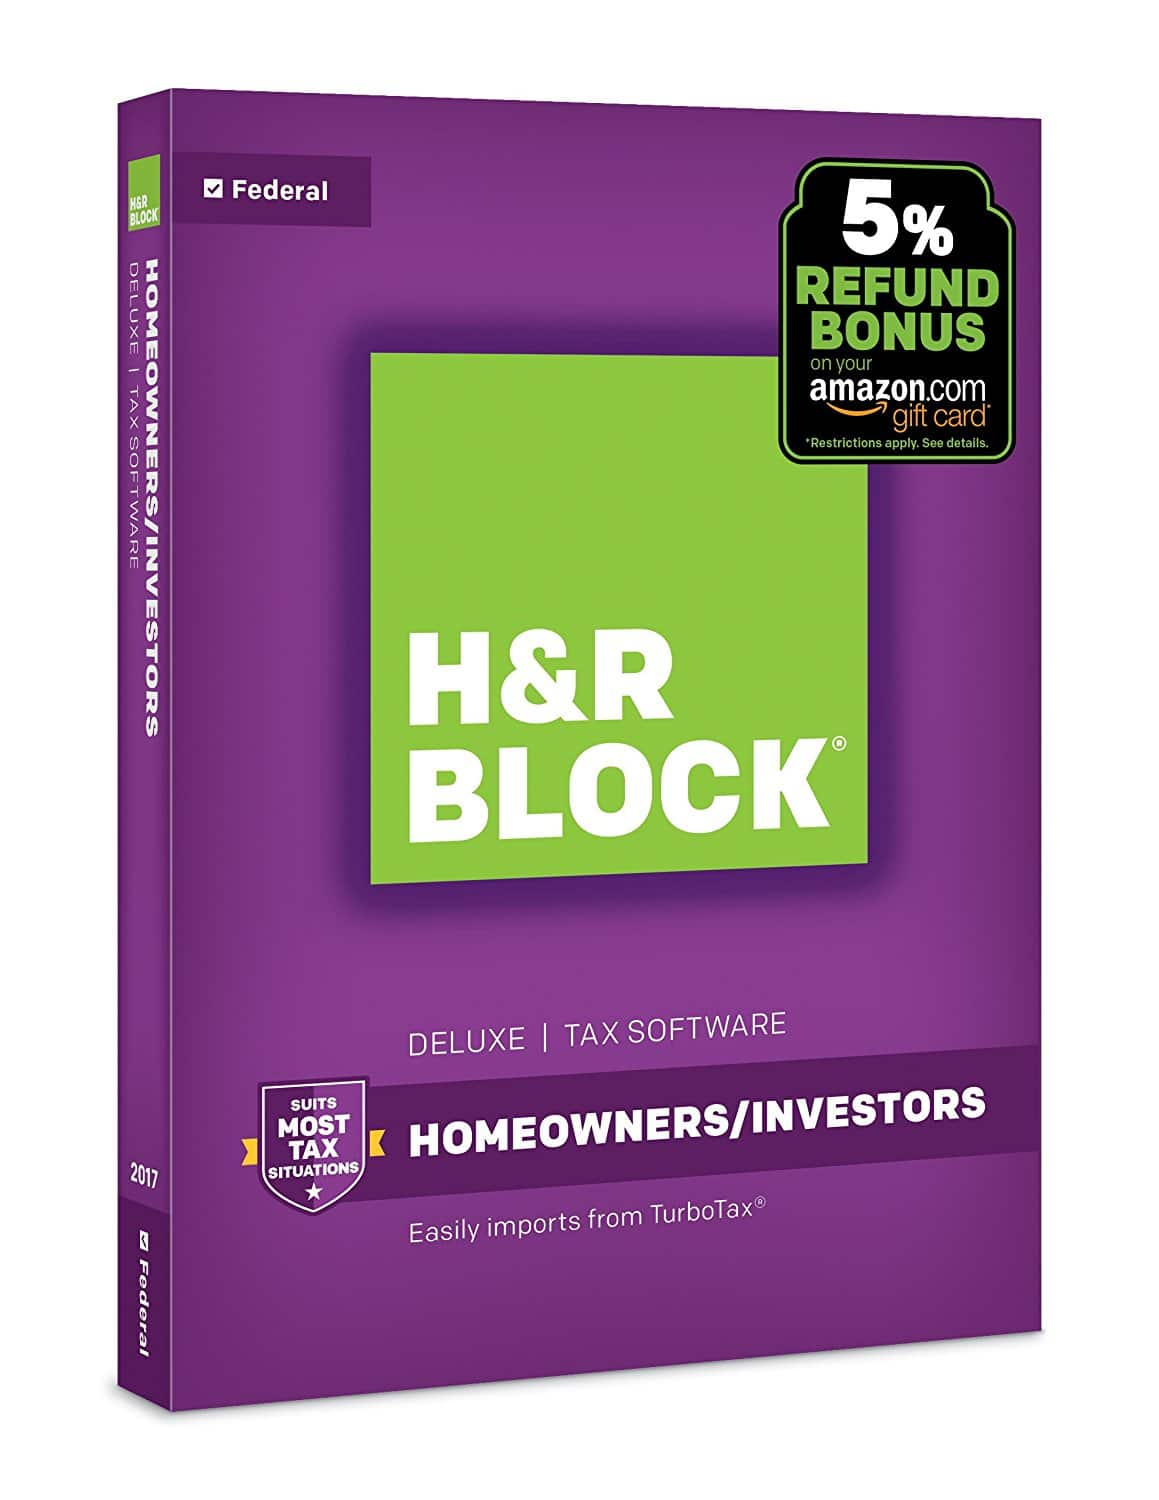 H&R Block 2017 Tax Software: 2017 Deluxe Software + State + Refund Bonus $19.99, 2017 Software Deluxe + Refund Bonus $13.99 & More via Amazon